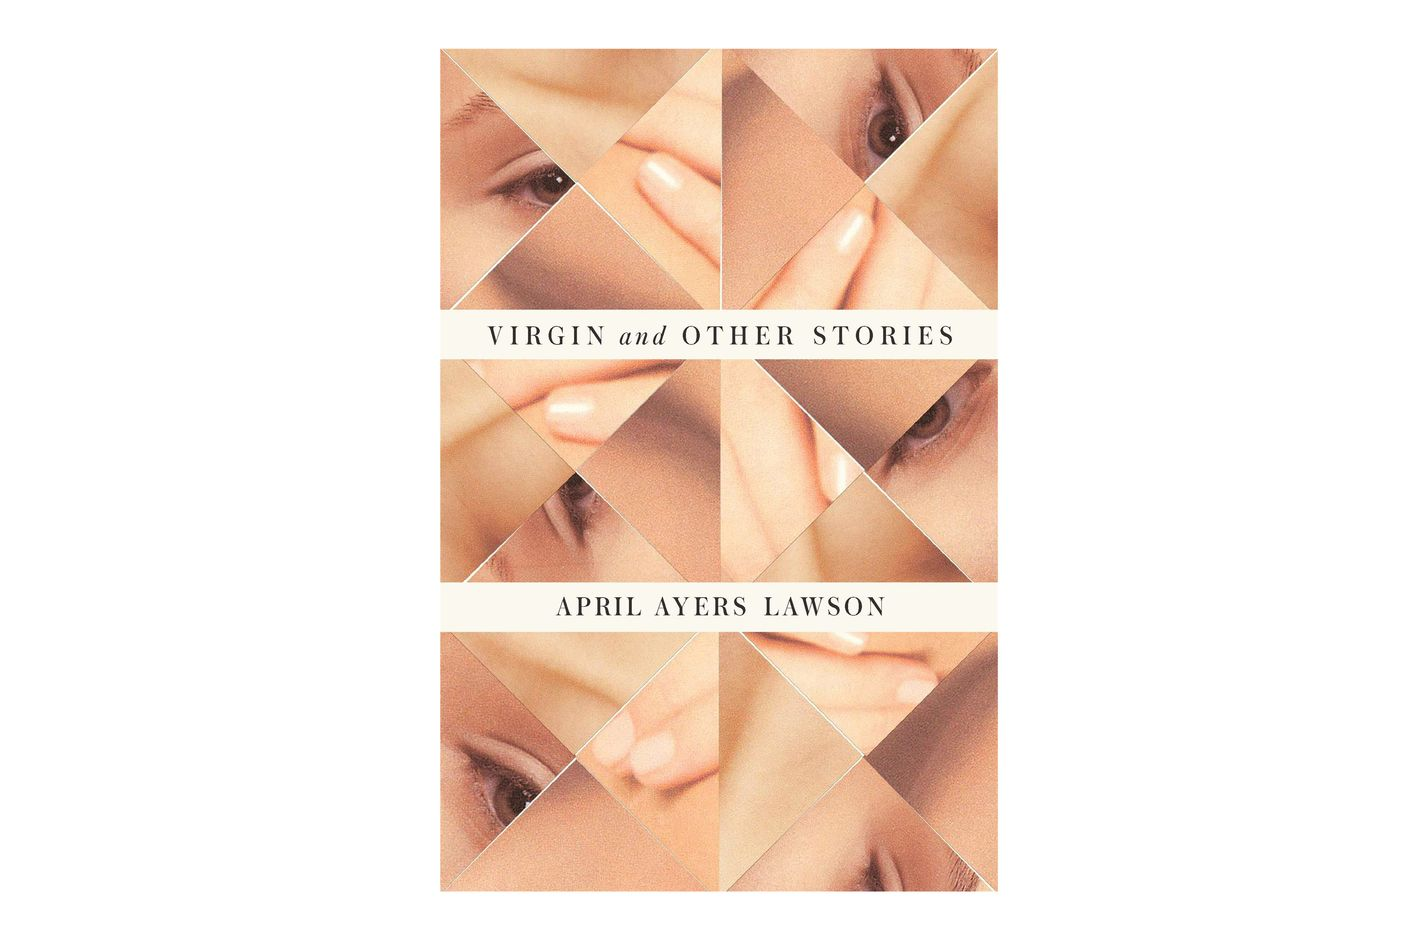 Virgin and Other Stories, by April Ayers Lawson